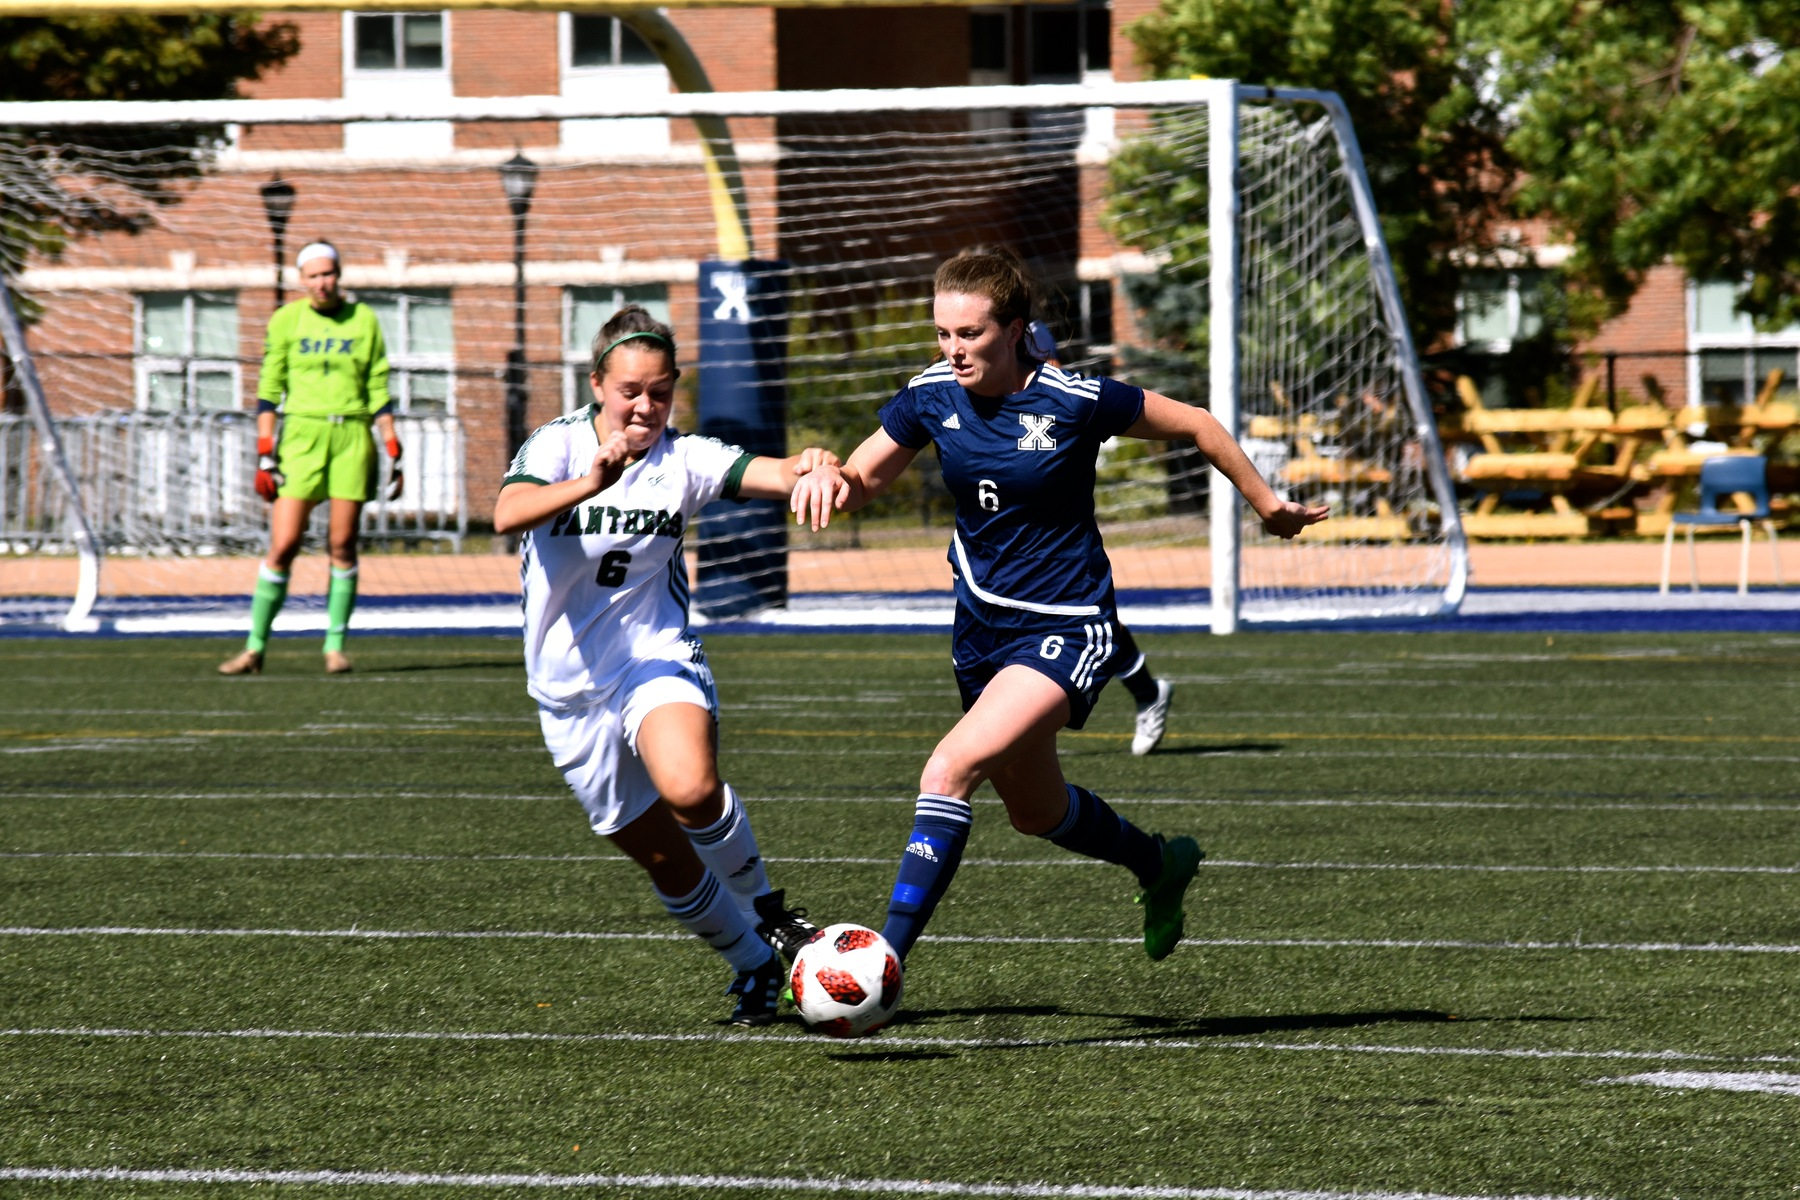 Panthers unable to solve X-Women in loss